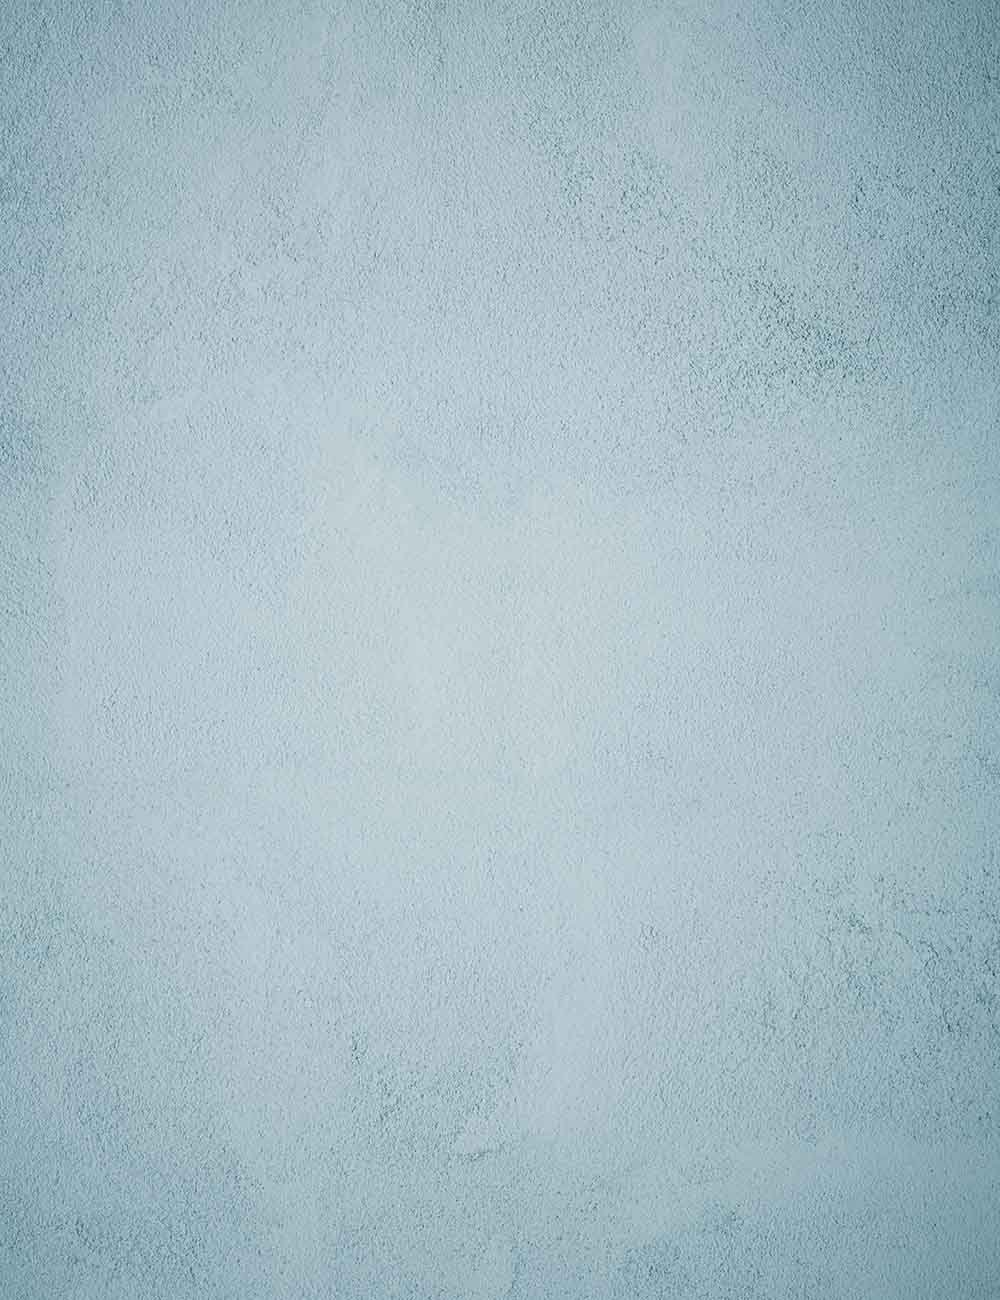 Abstract Pale Turquoise Color Painted Wall Backdrop For Photography - Shop Backdrop